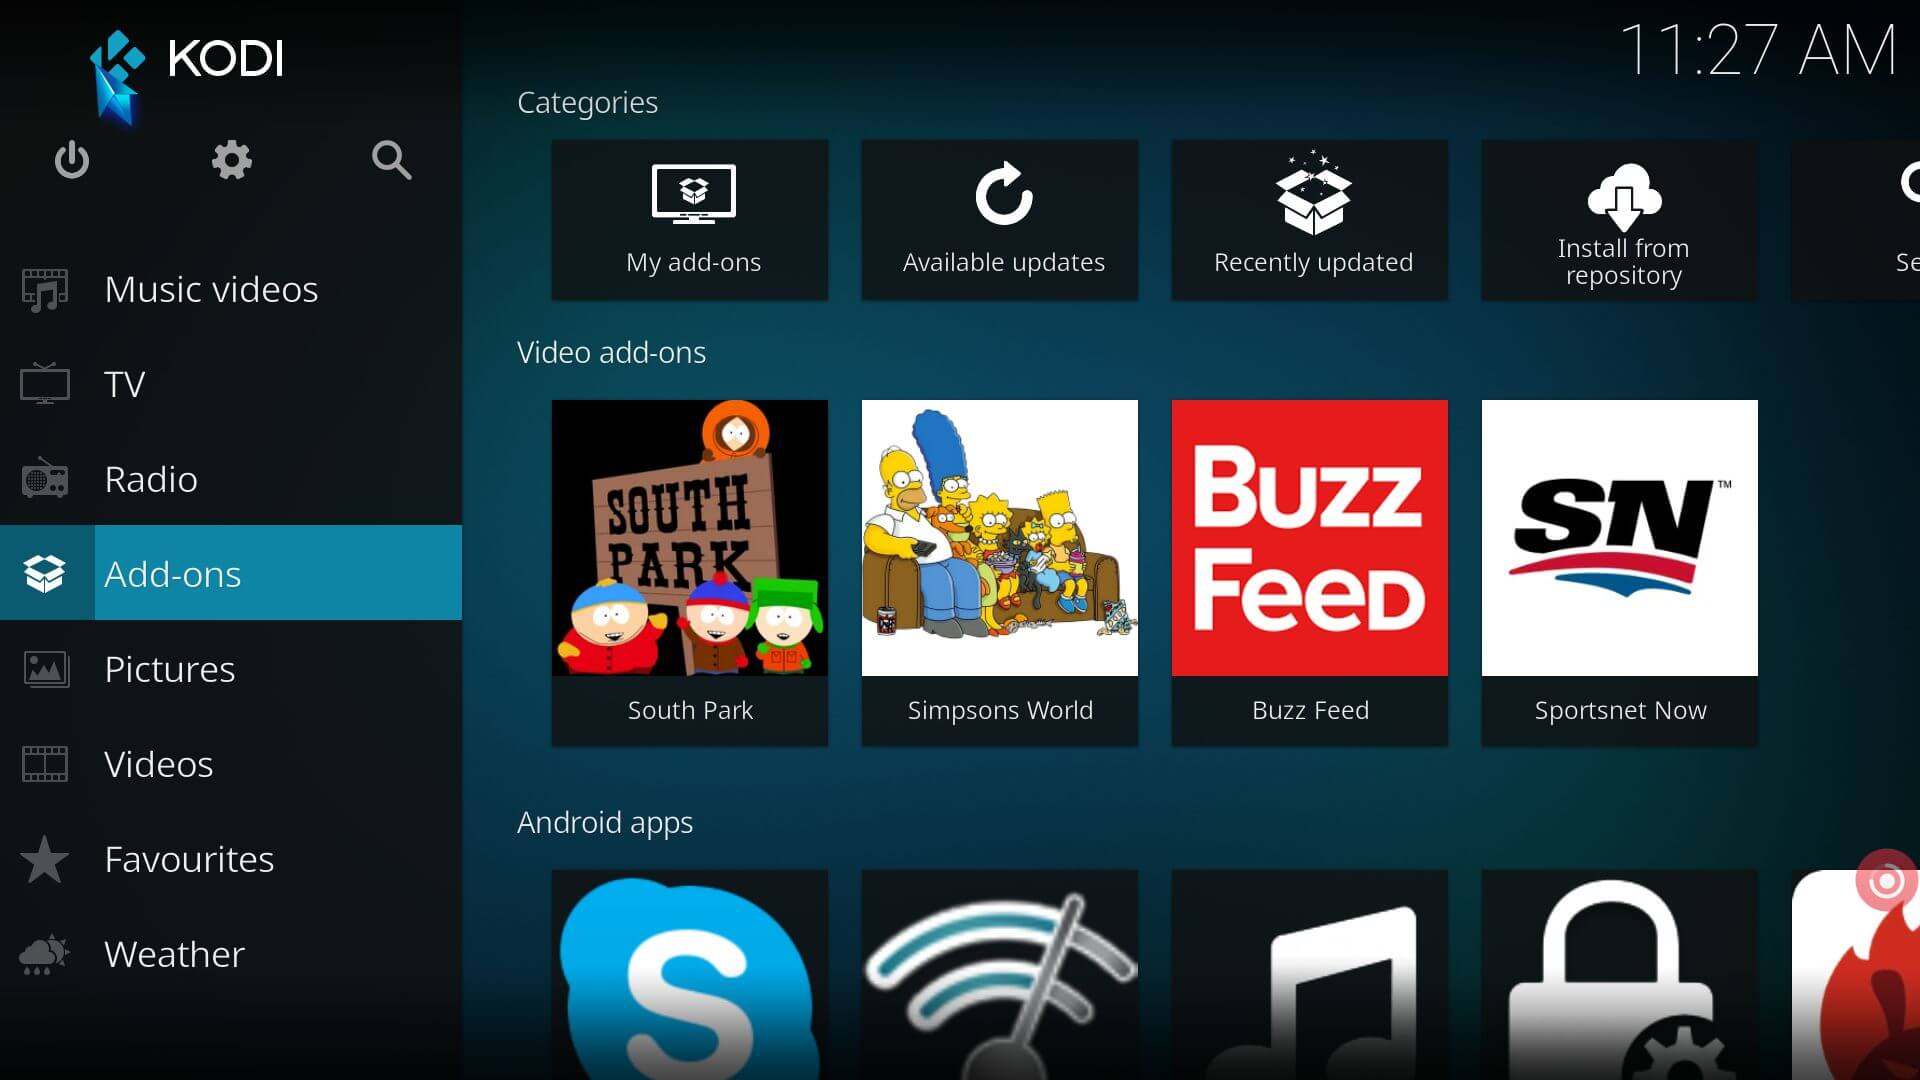 Himedia q10 pro review first 4k uhd blu ray navigation player with it comes as clean operating system because it has only required apps like kodi youtube and other besides that it works fast and fluid ccuart Choice Image